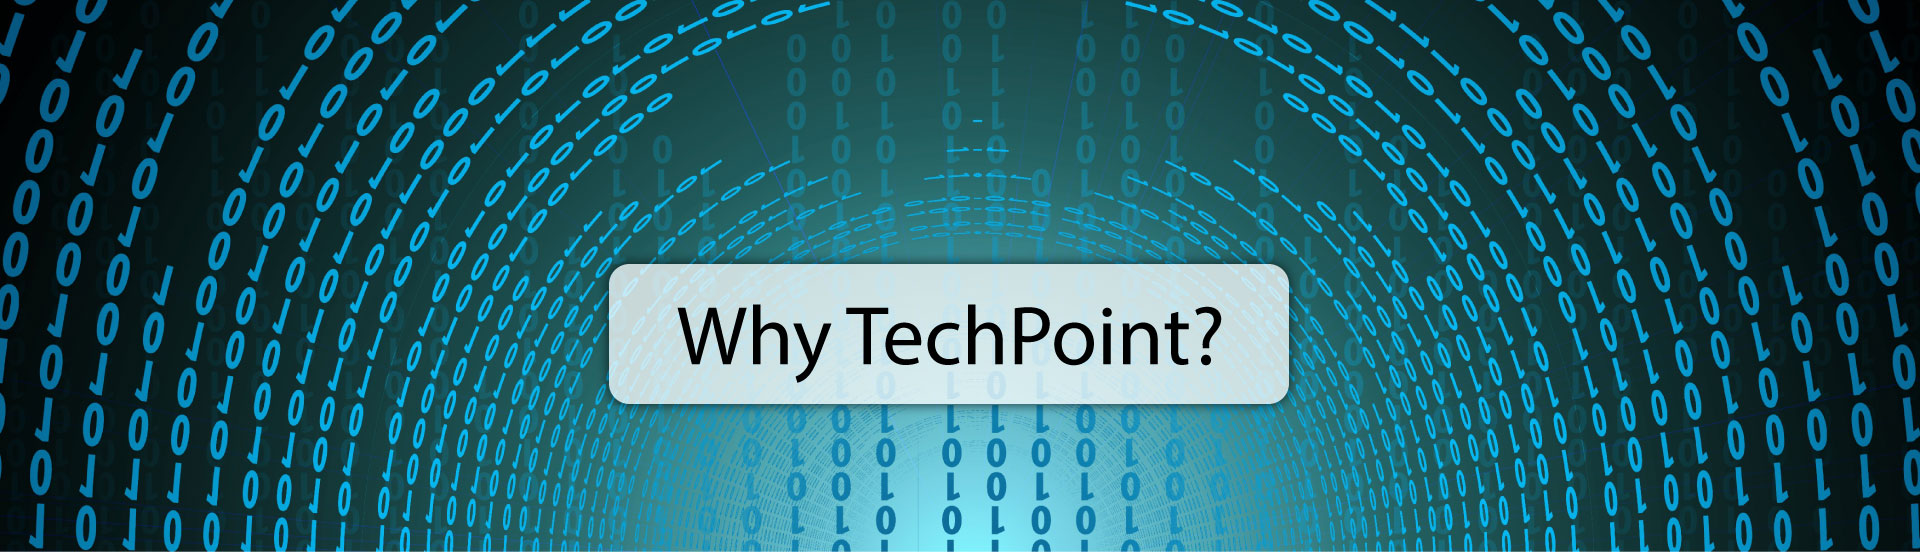 Why TechPoint?